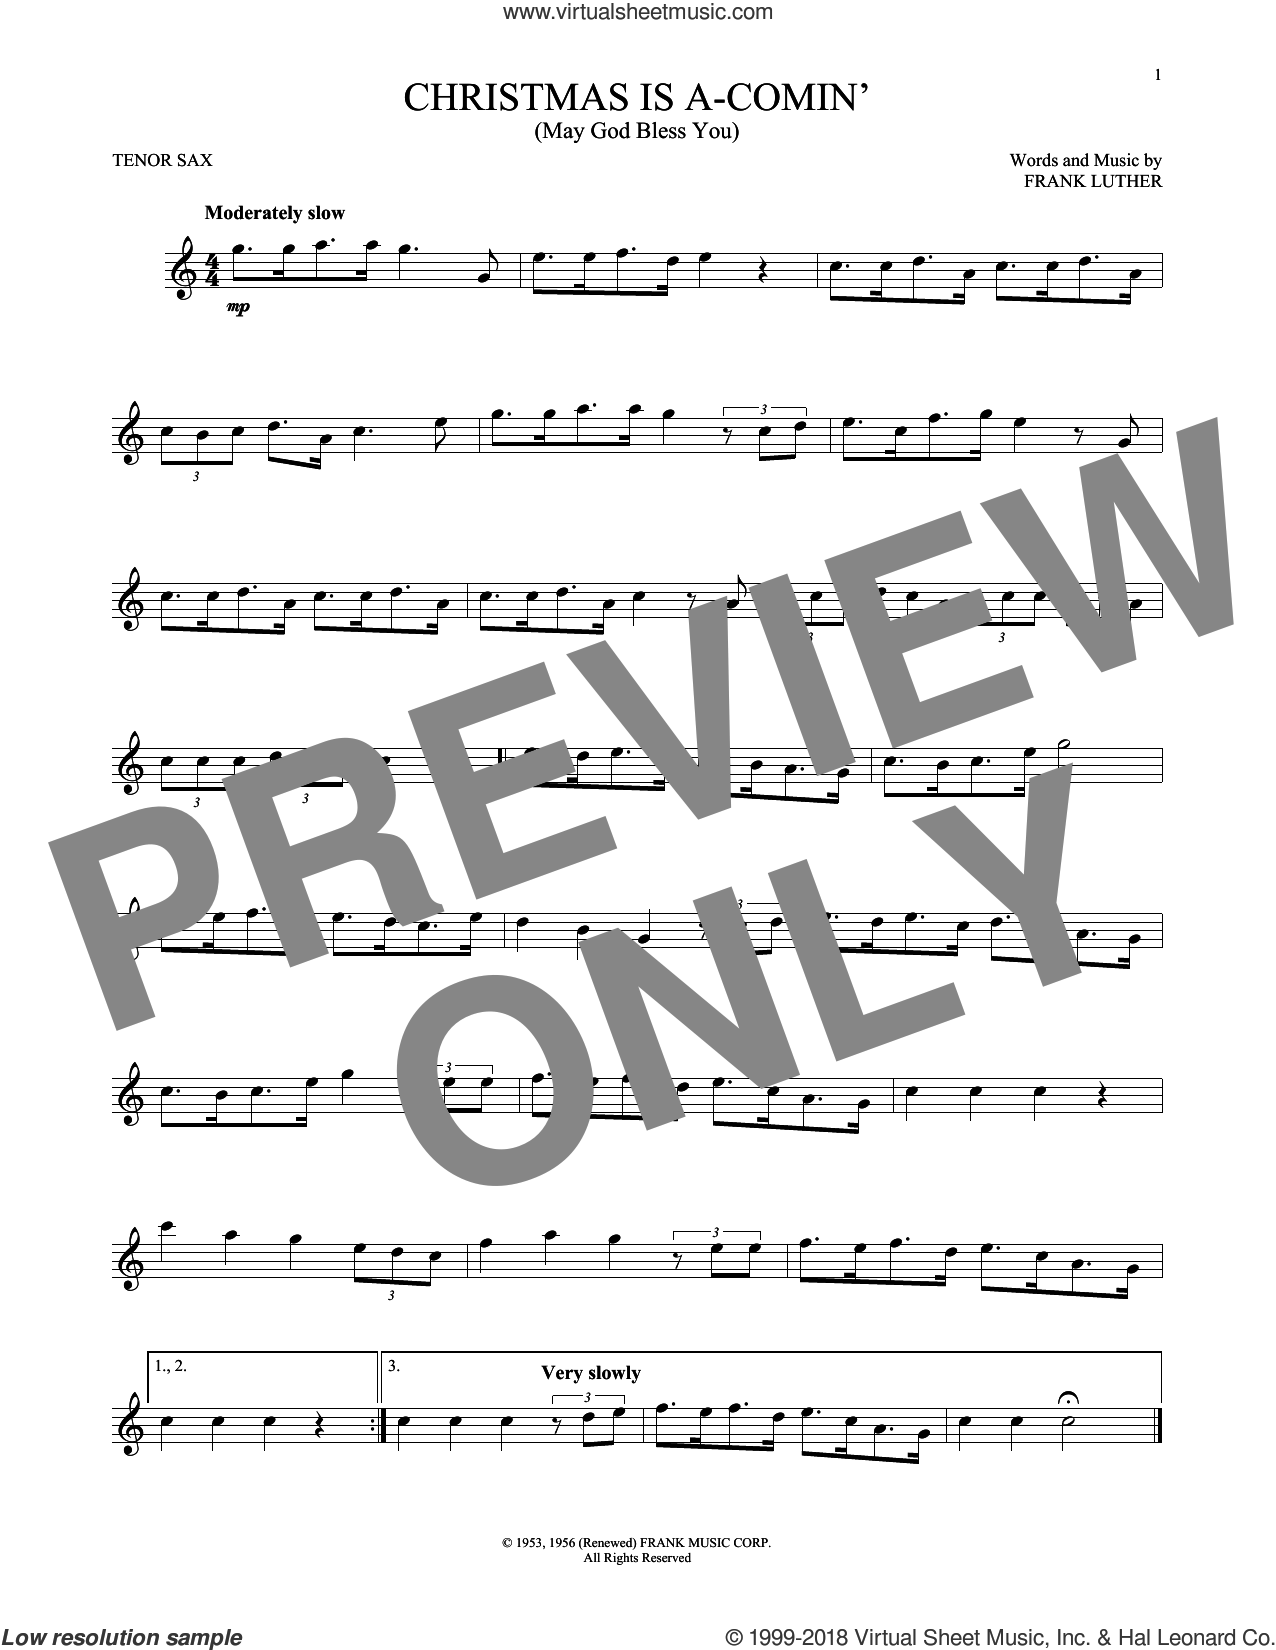 Christmas Is A-Comin' (May God Bless You) sheet music for tenor saxophone solo by Frank Luther, intermediate skill level